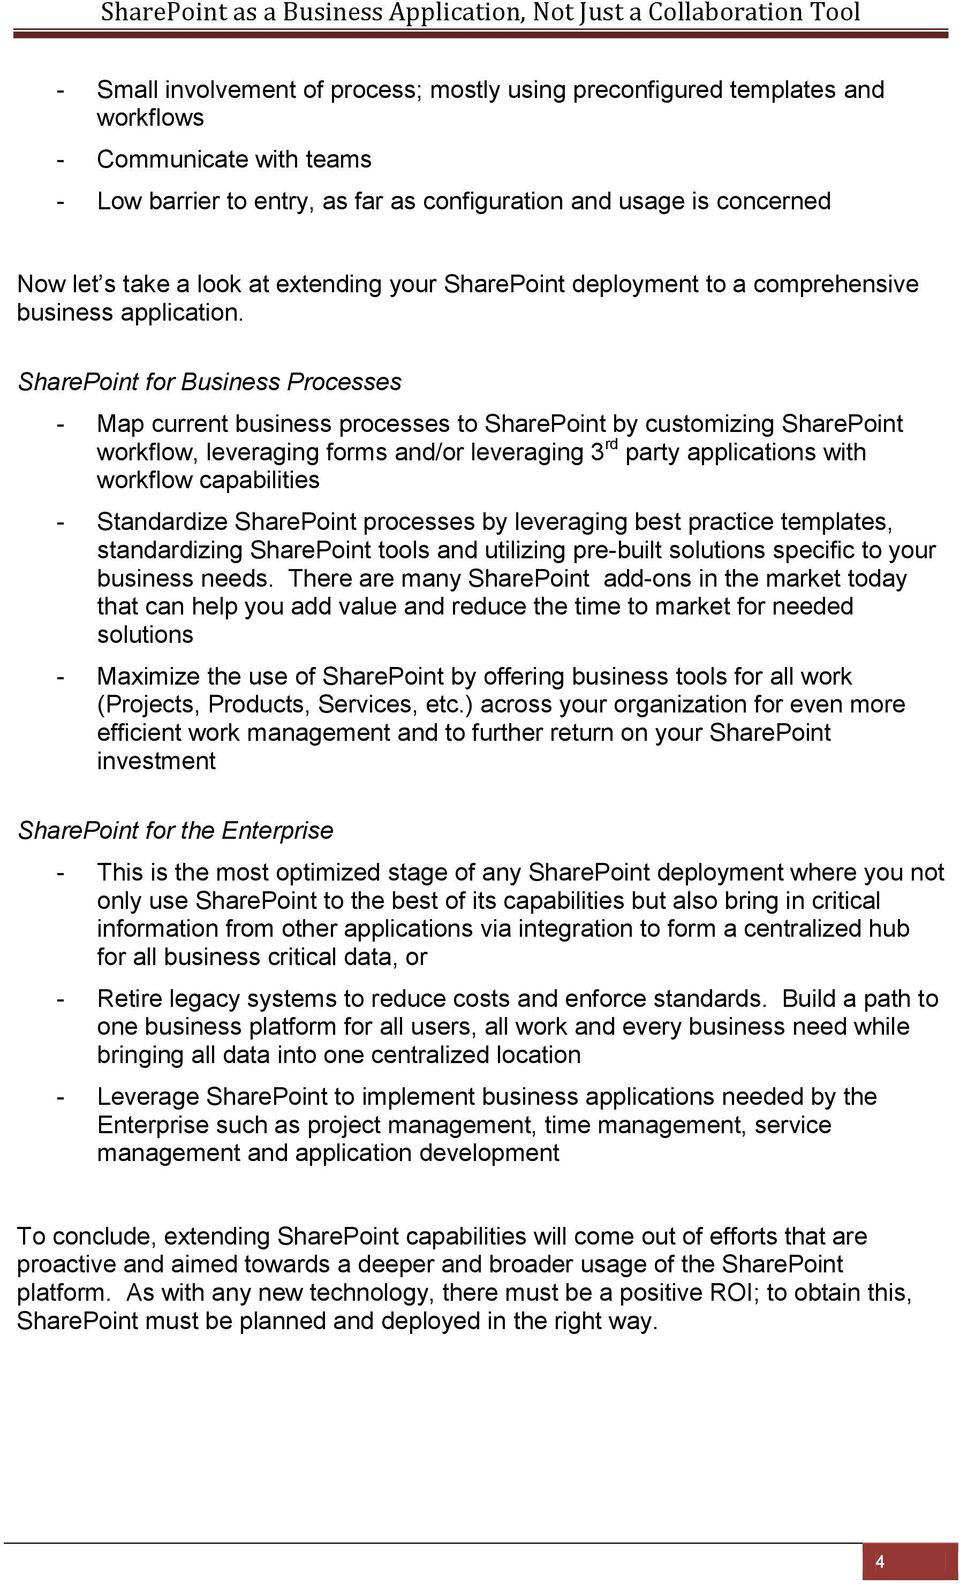 SharePoint for Business Processes - Map current business processes to SharePoint by customizing SharePoint workflow, leveraging forms and/or leveraging 3 rd party applications with workflow